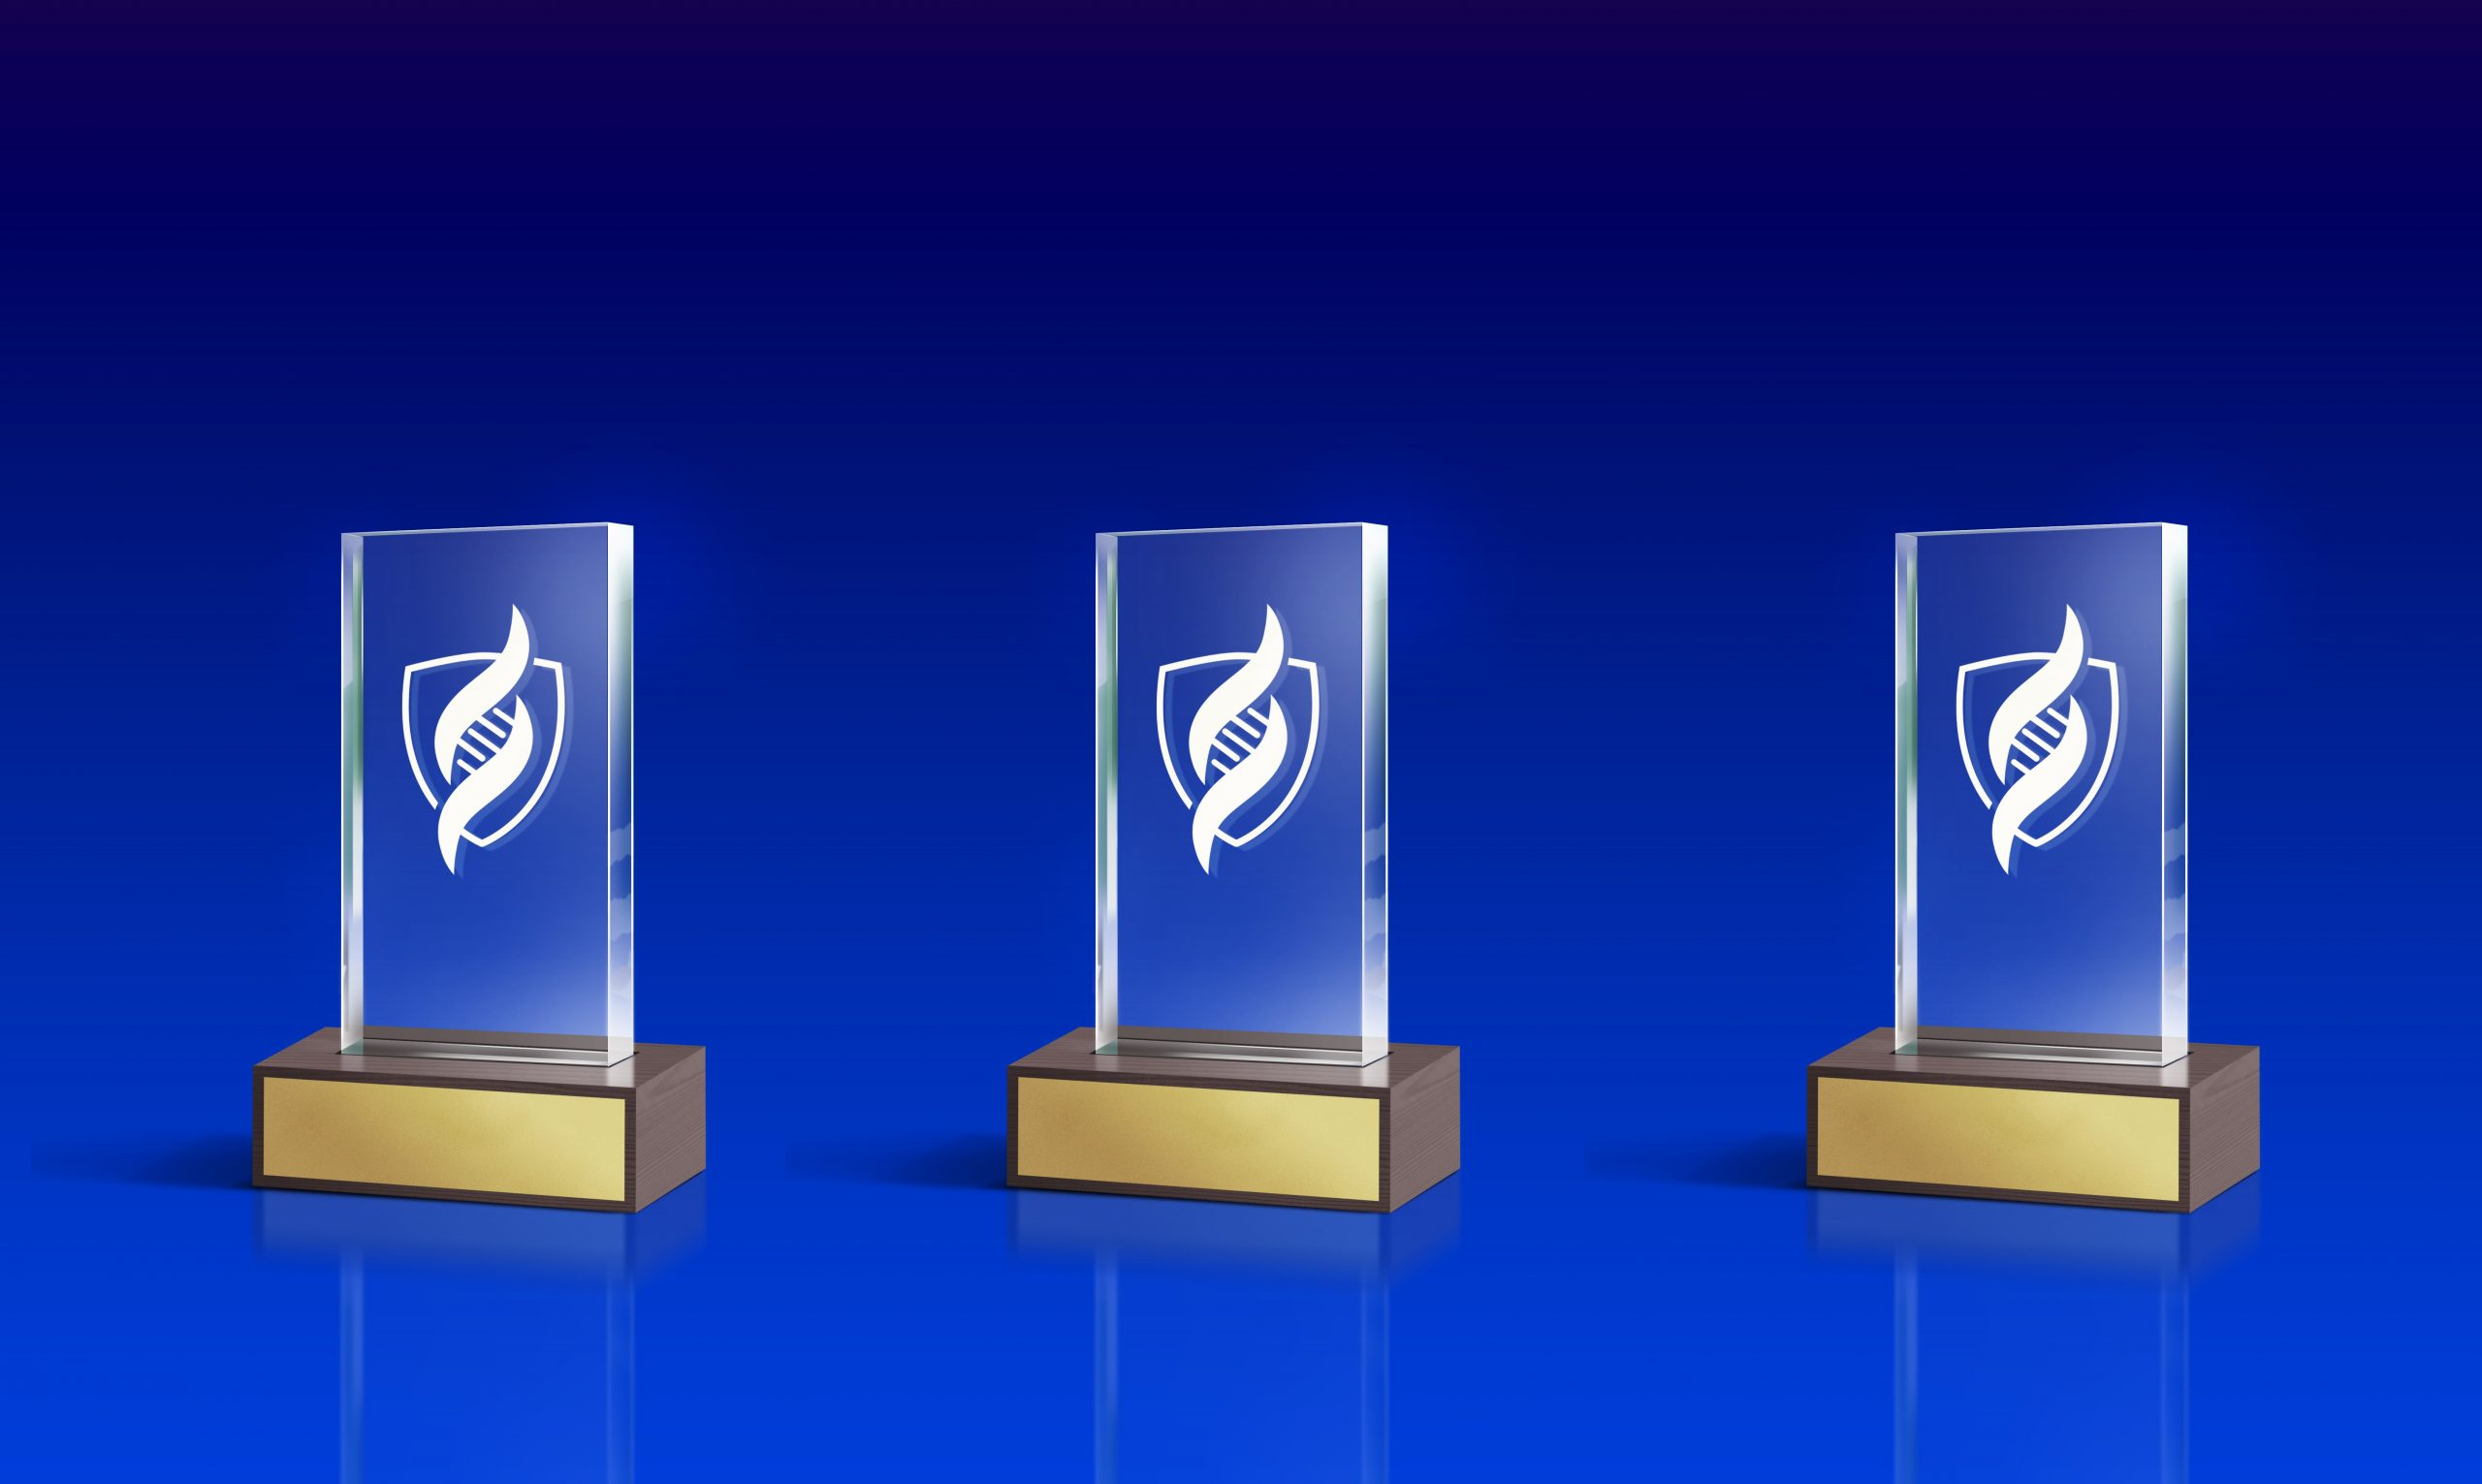 IdentityMind Secures Three Industry Awards from Oracle, Silicon Review, and MEDICI